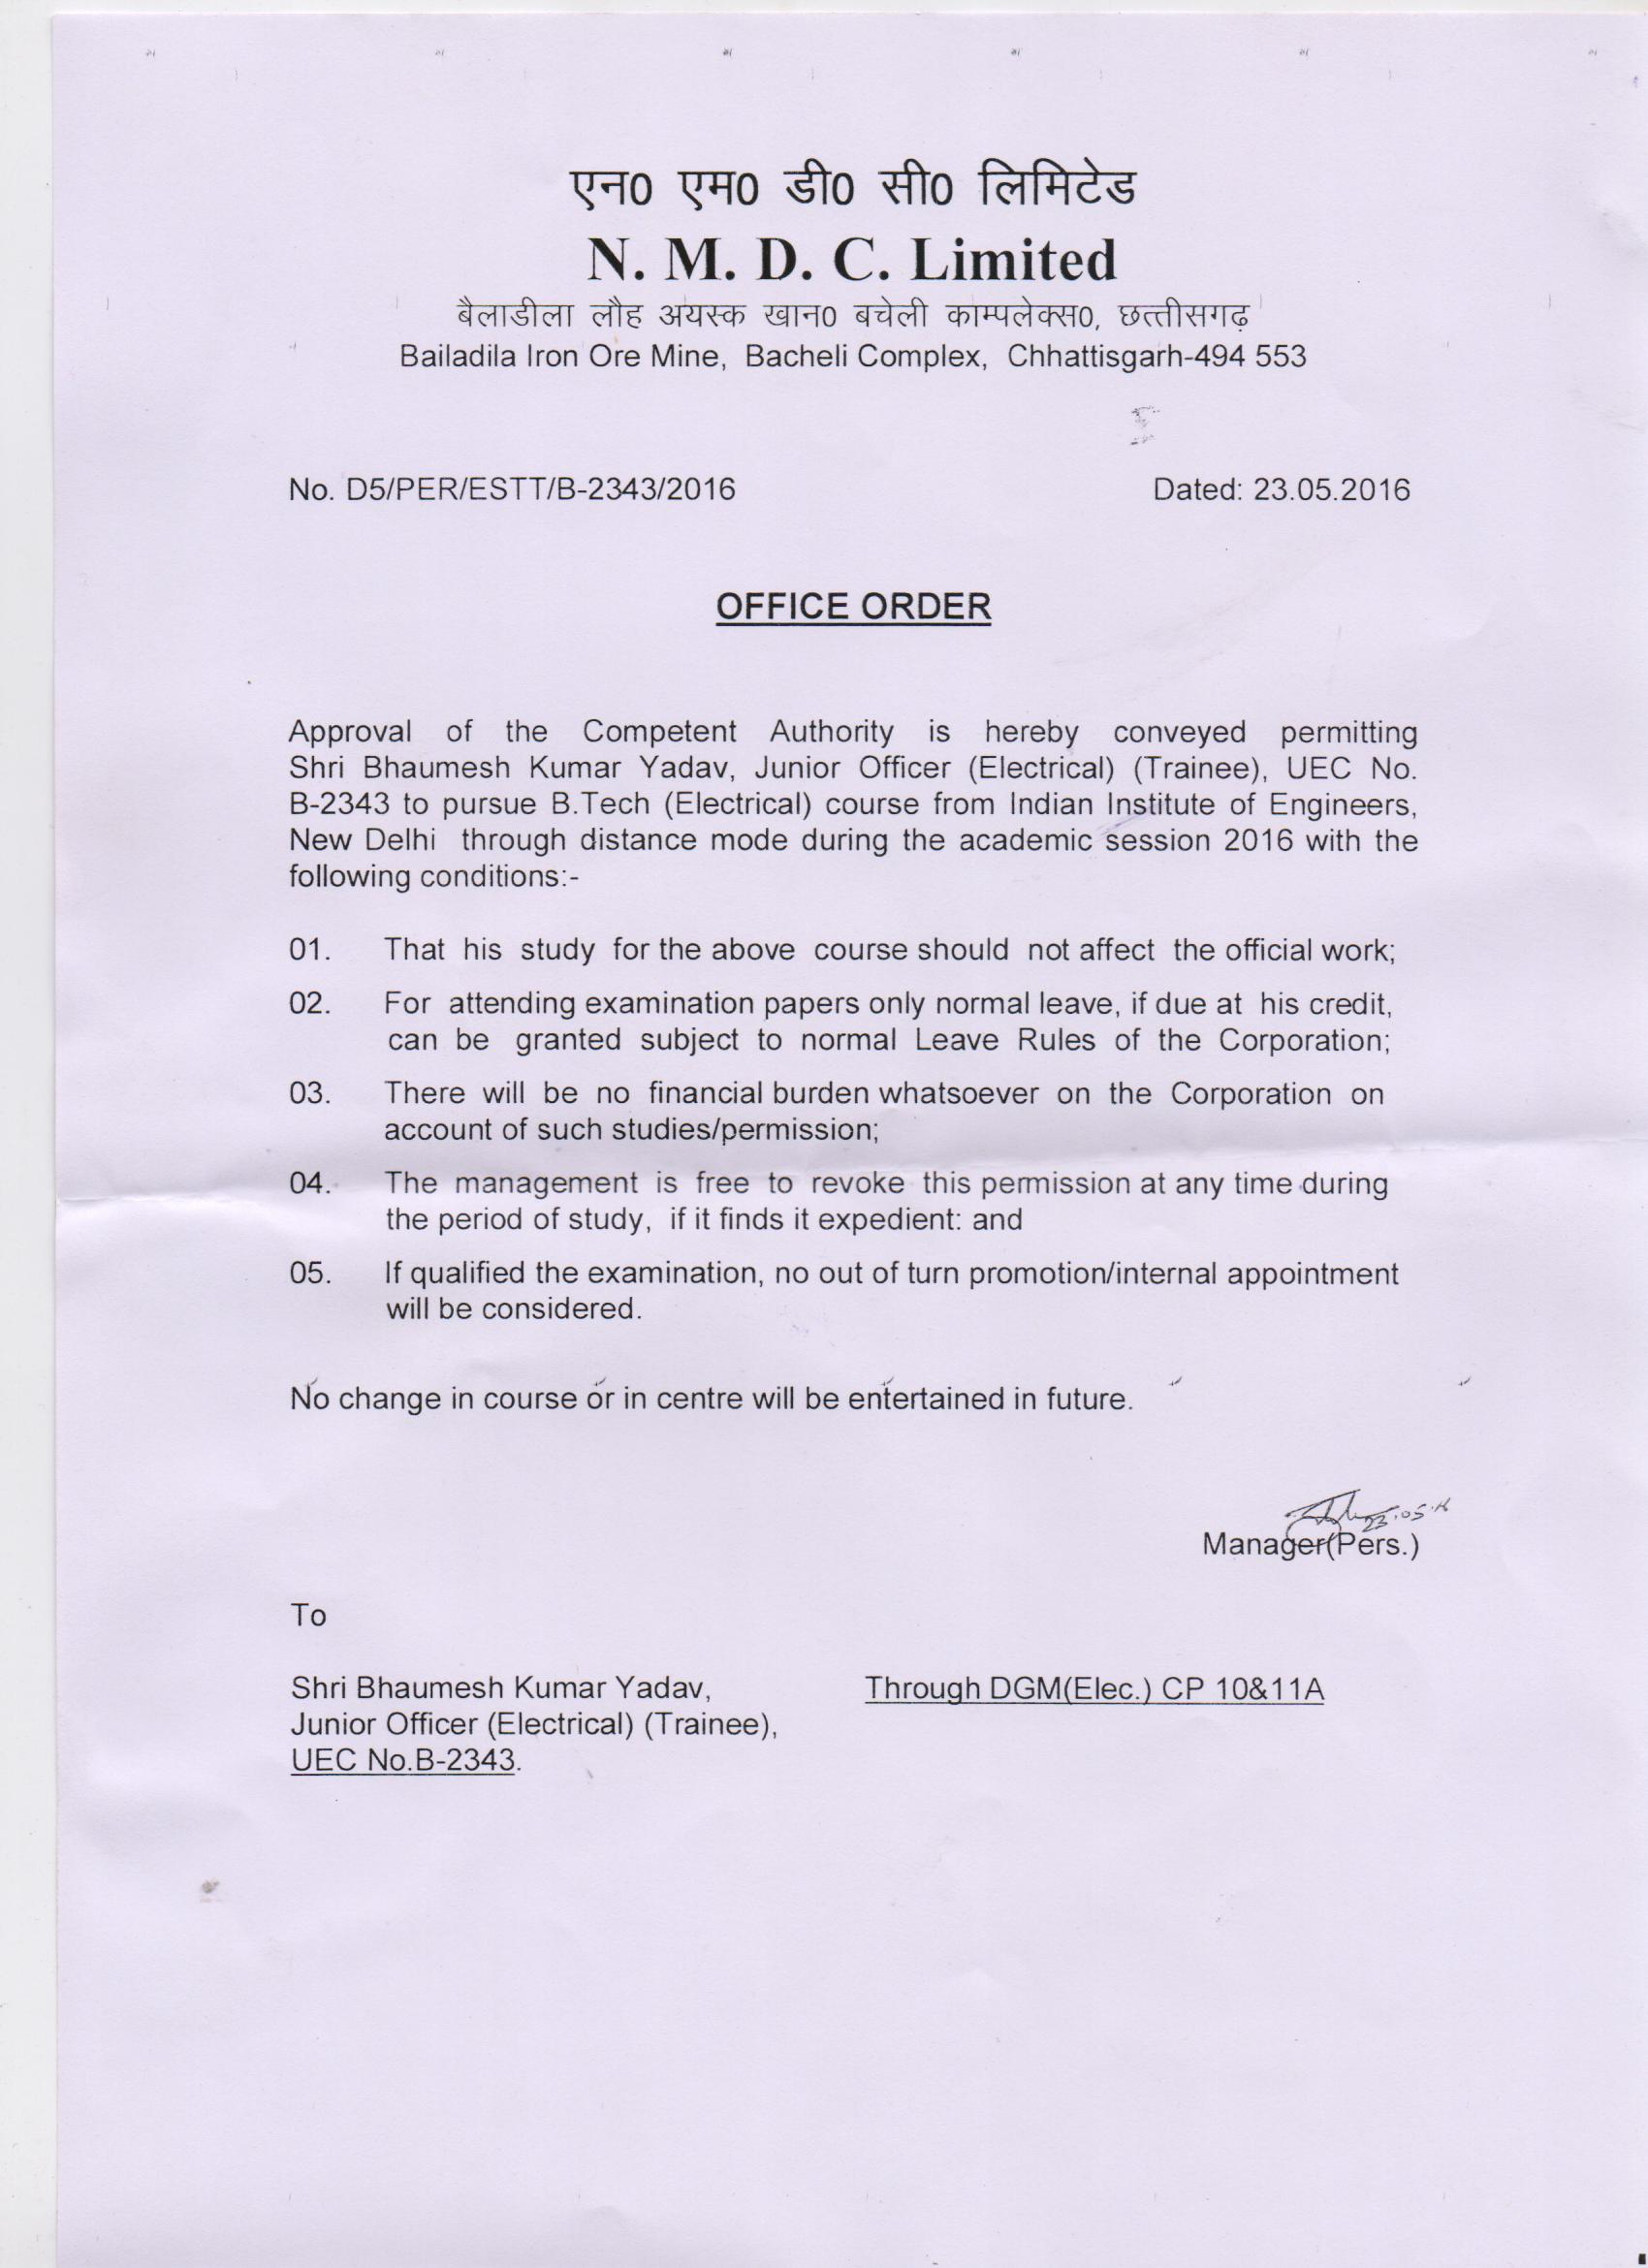 Rti information reply iie institution 4 nmdc limited noc letter download altavistaventures Image collections